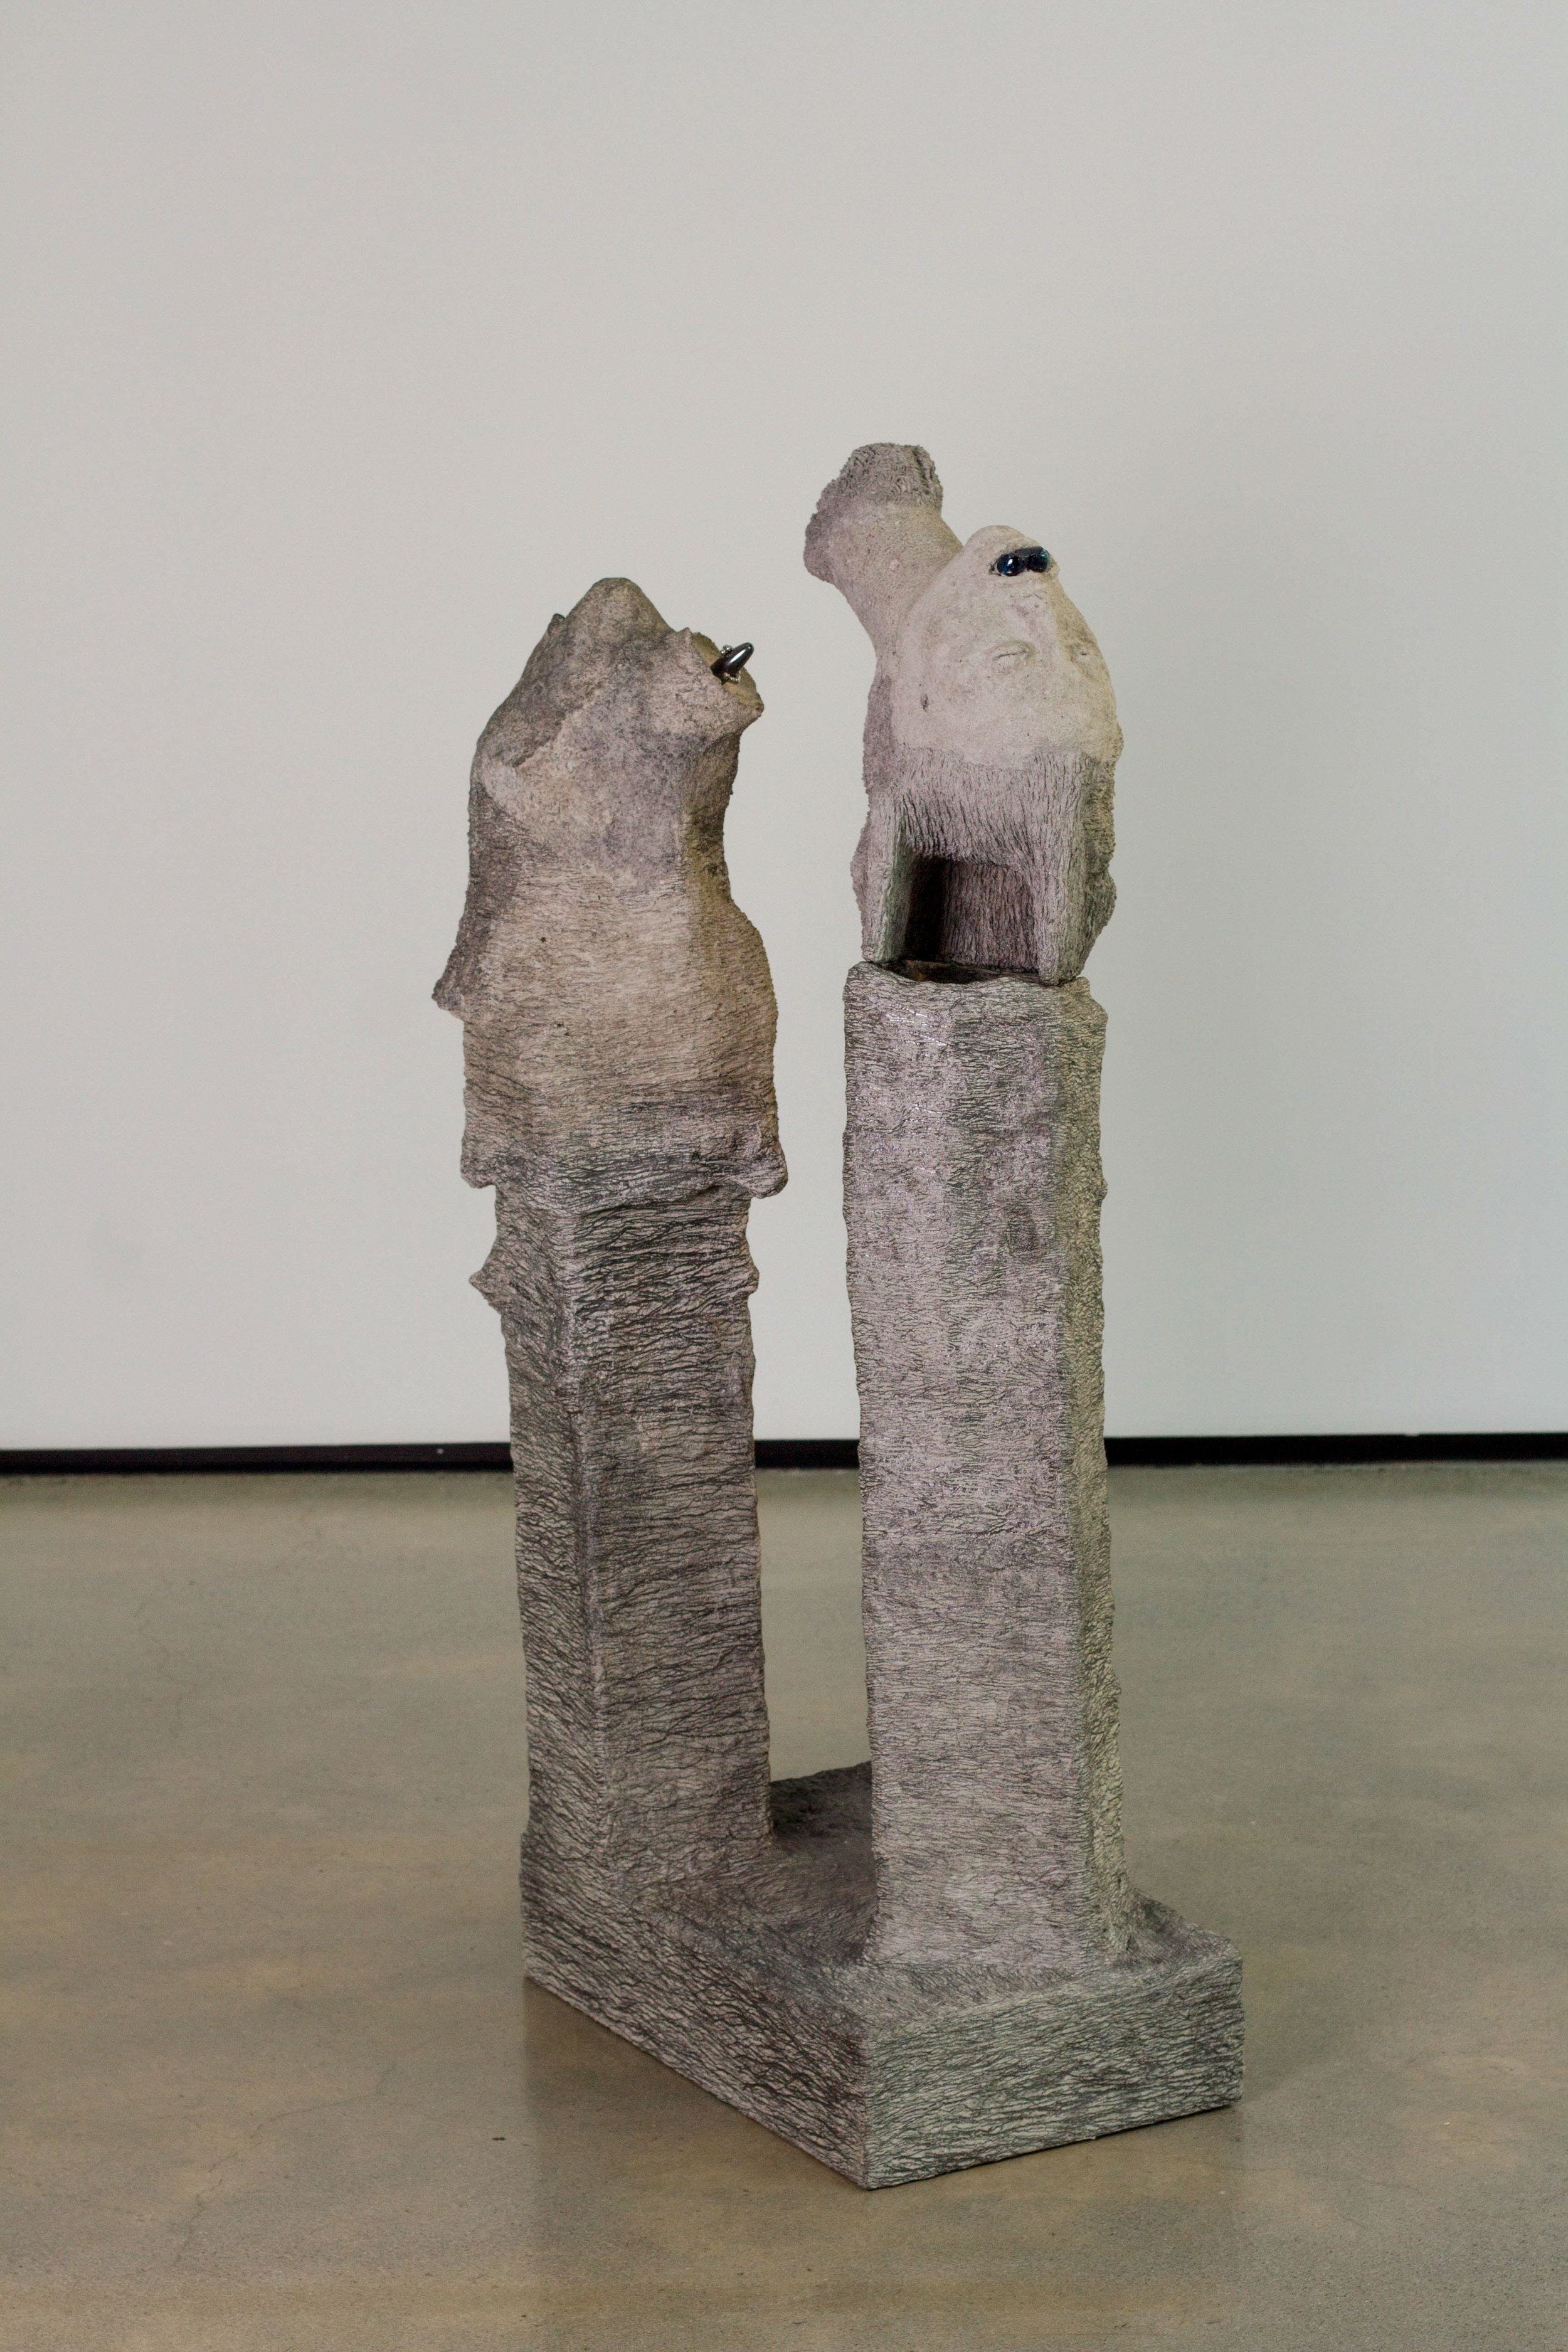 Tommy Hartung    The Bathers , 2016  Celluclay, speaker, glass, magnet, and ball bearings  47 x 23.5 x 15in. (119.4 x 59.7 x 38.1cm)